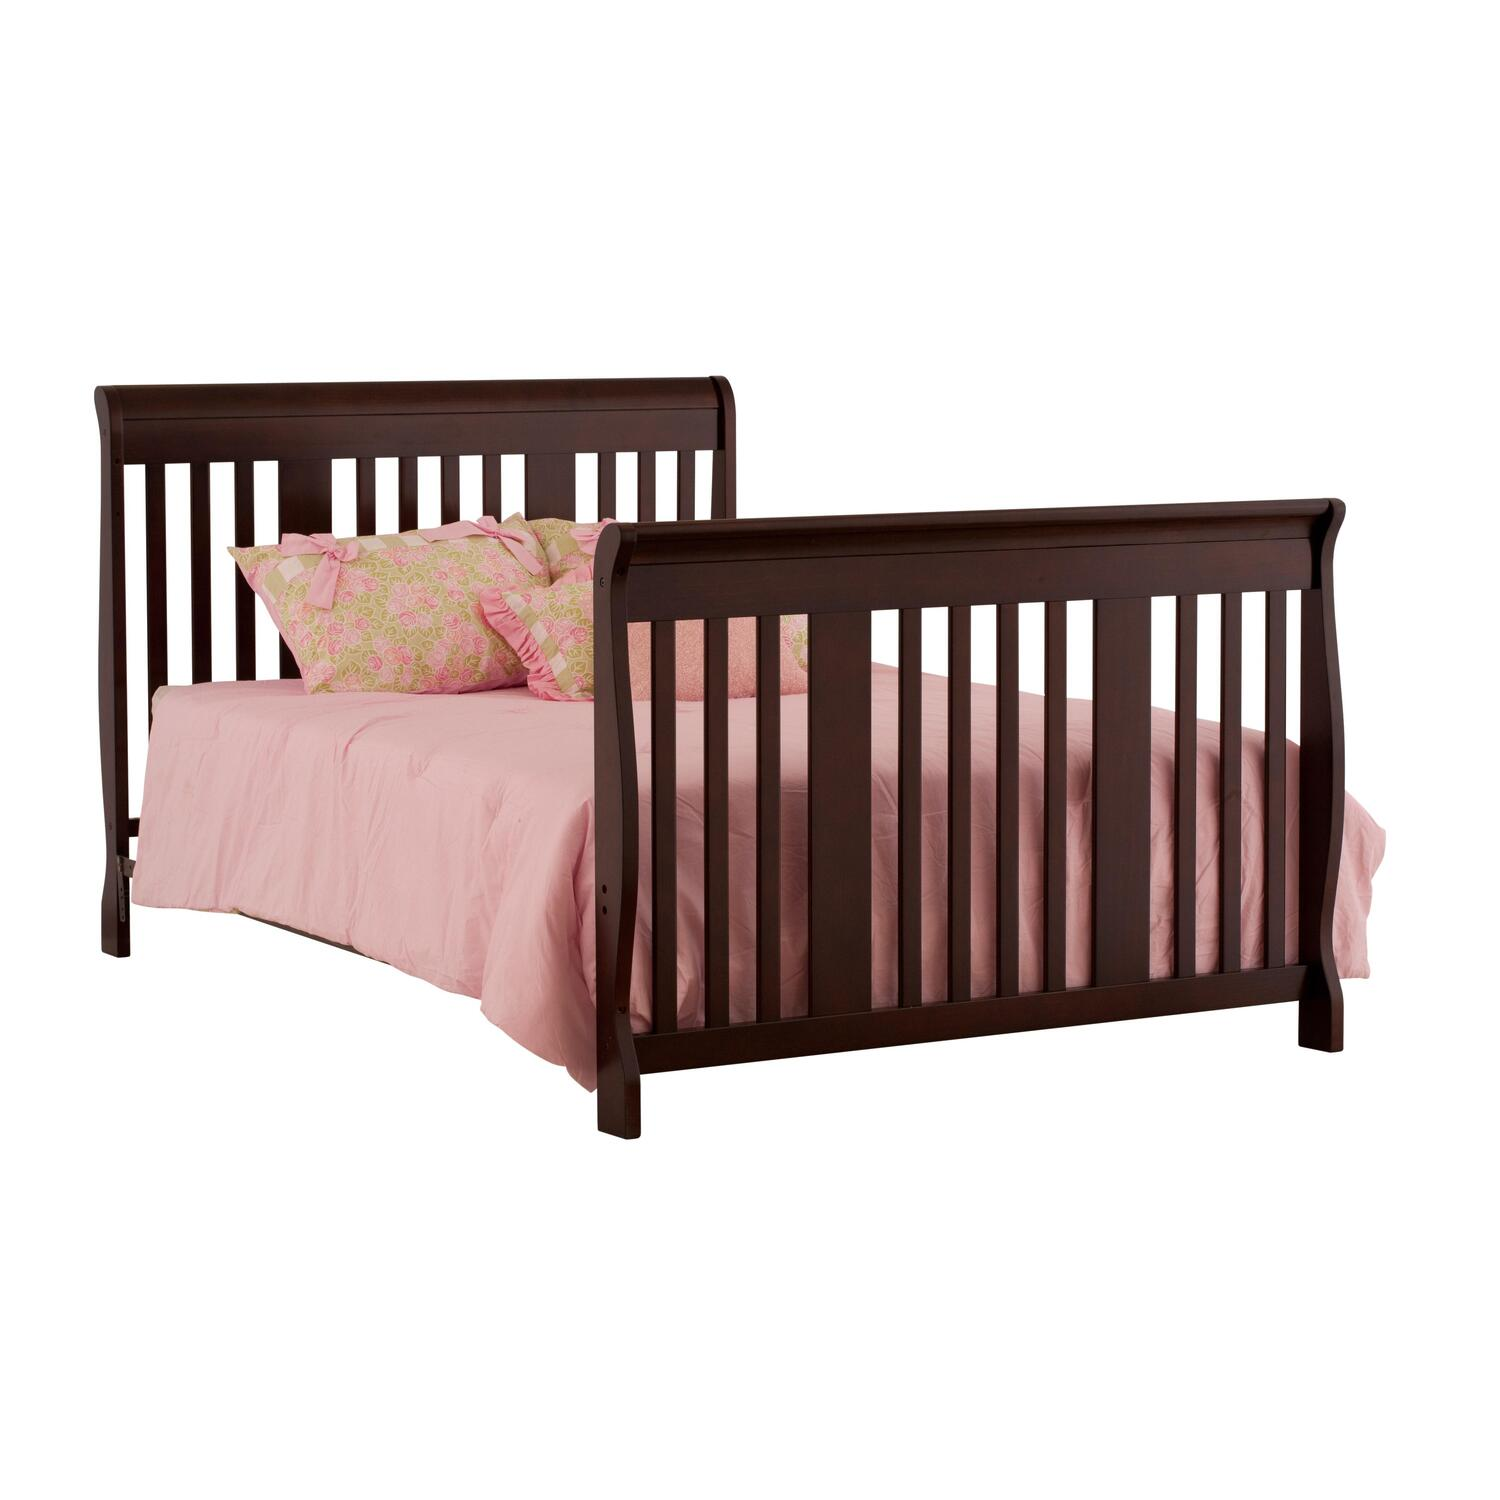 Stork craft crib reviews - Roll Over Image To Zoom